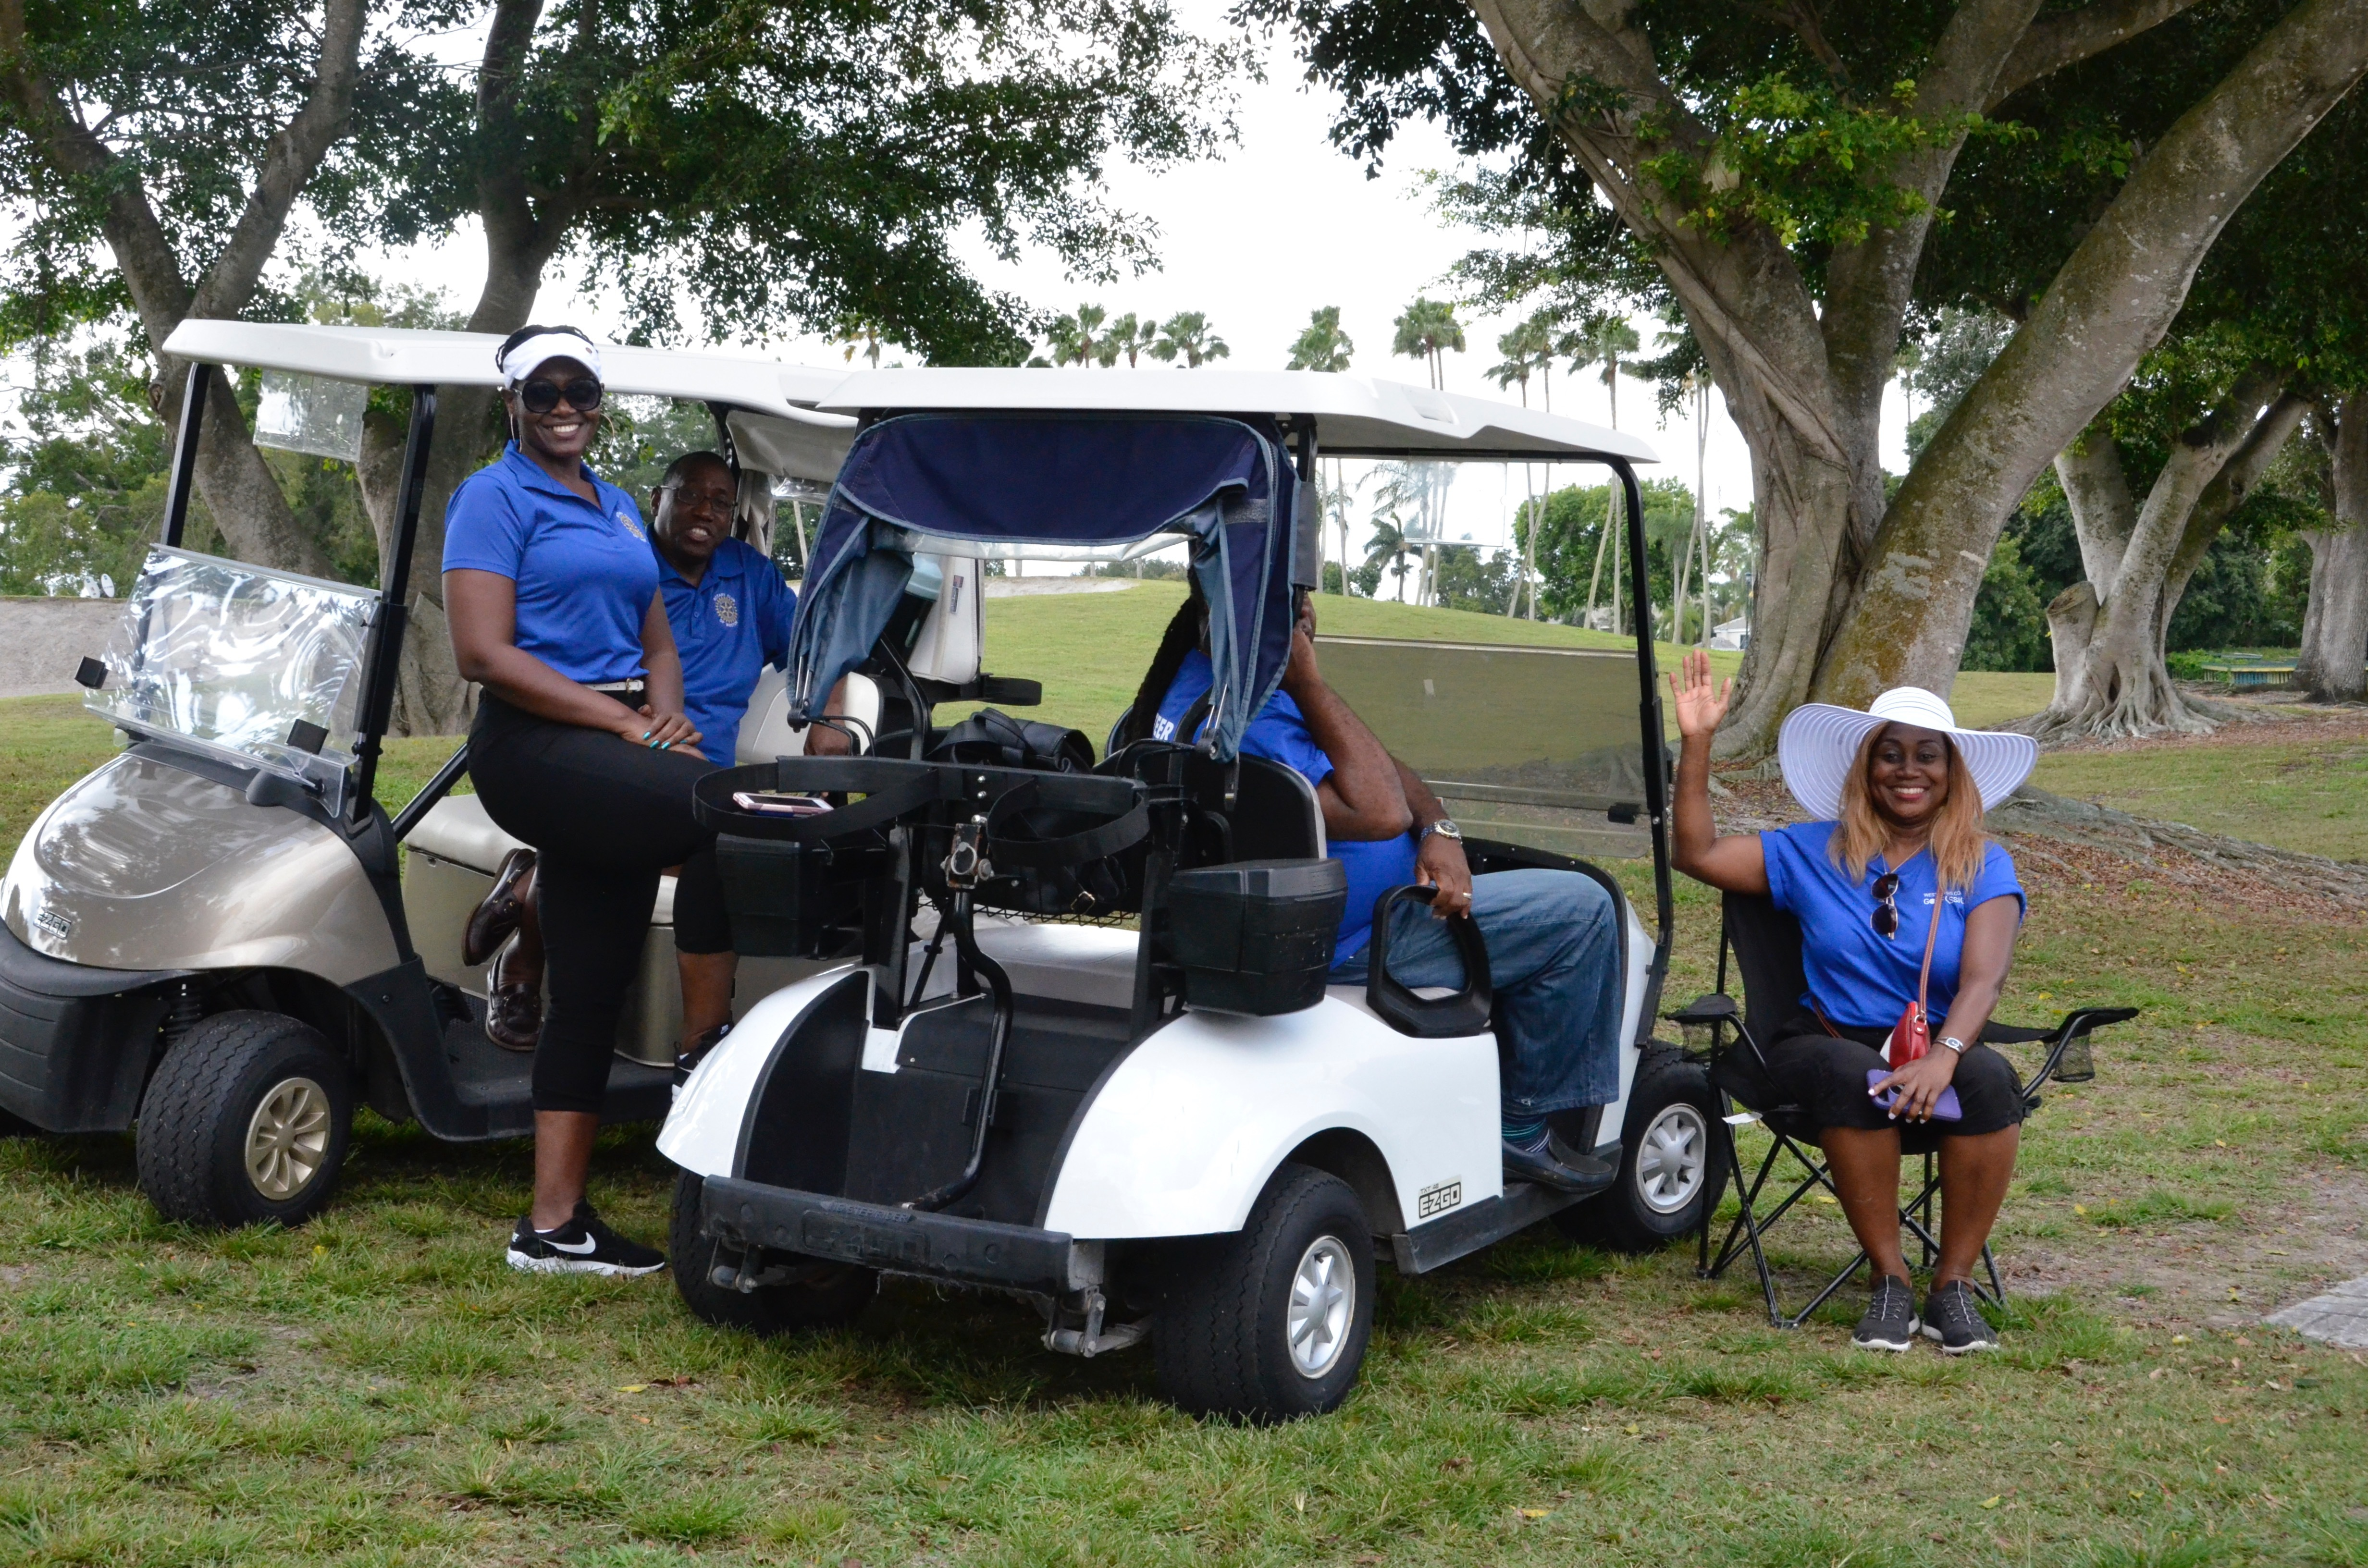 33rd Annual Rotary Golf Classic Sponsored by FHVLEGAL.COM gallery image #52